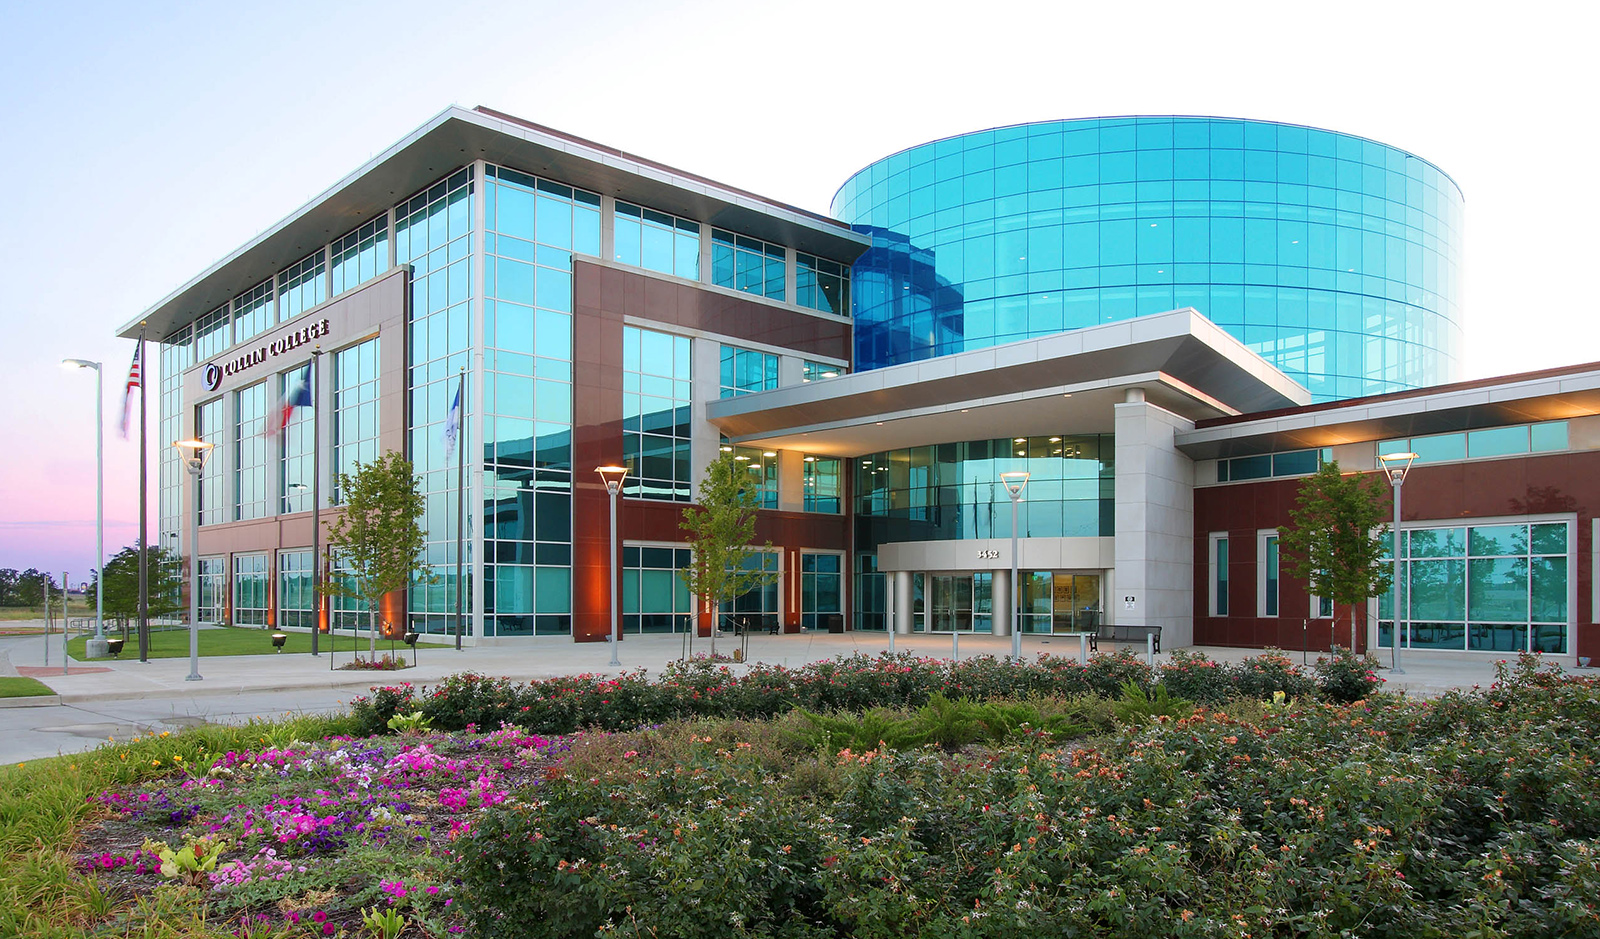 Collin College | University Center and Multiple Projects